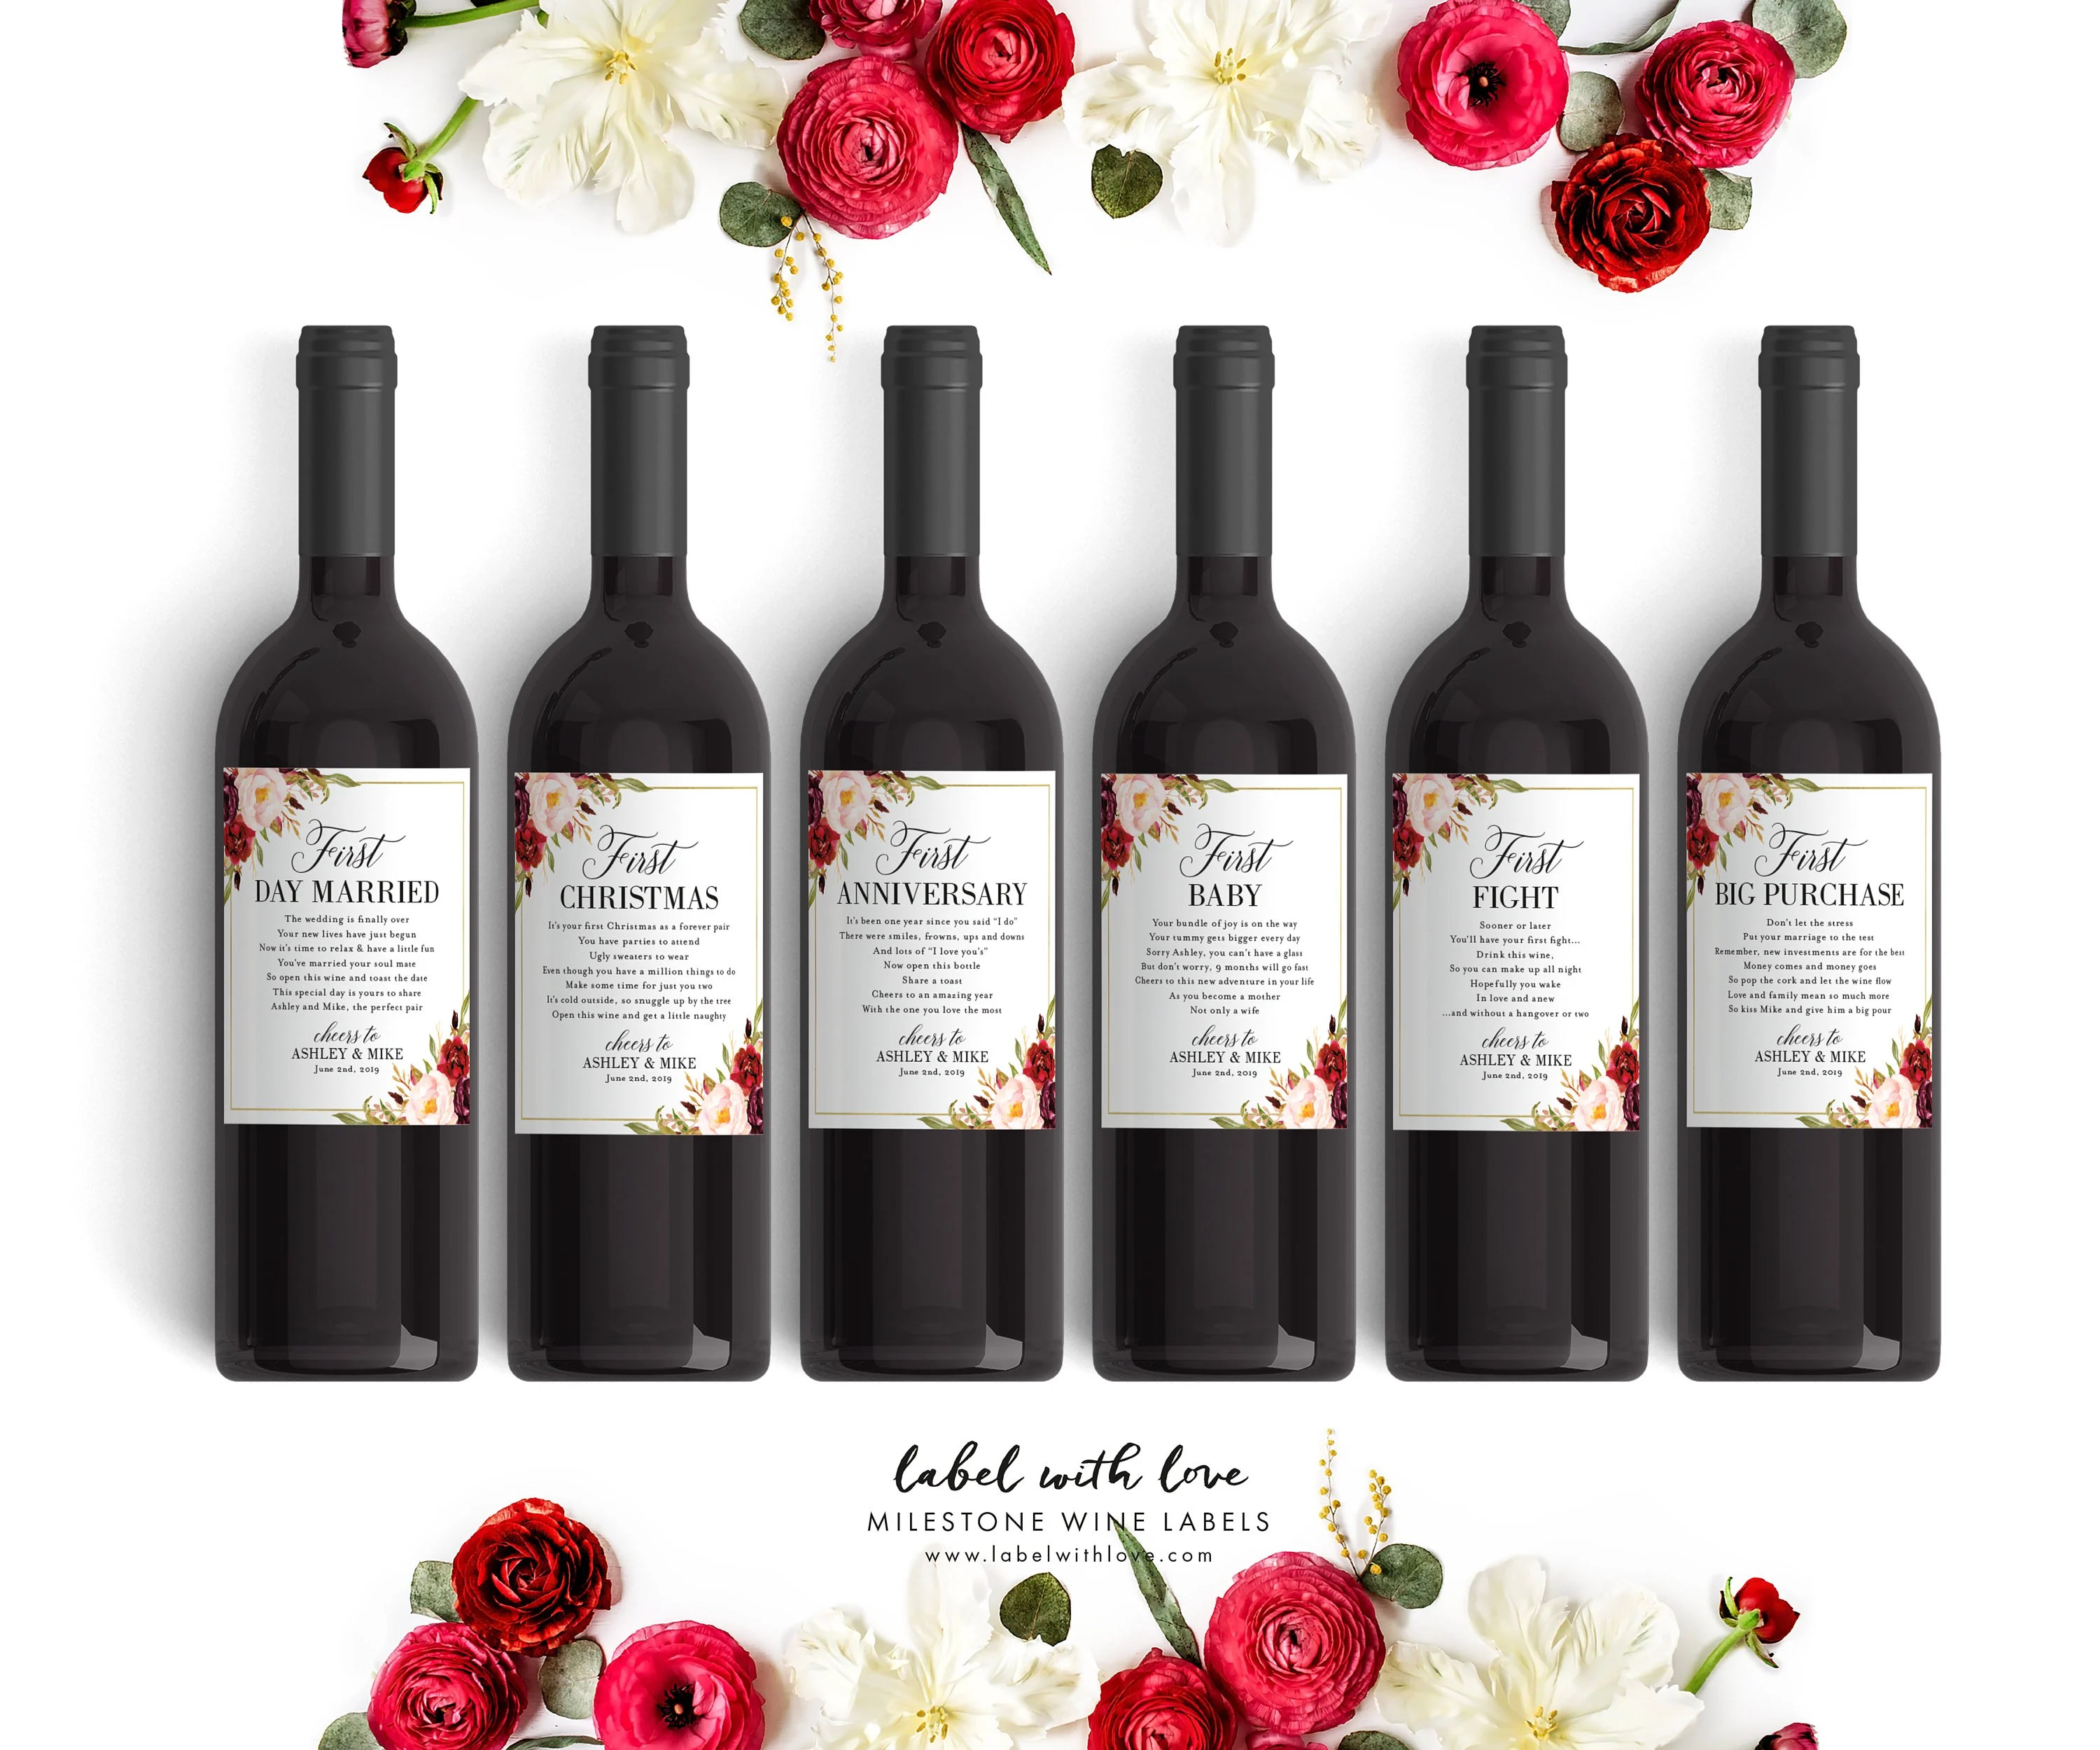 Fall Wedding Milestone Wine Labels Winter Wedding Gift Wine